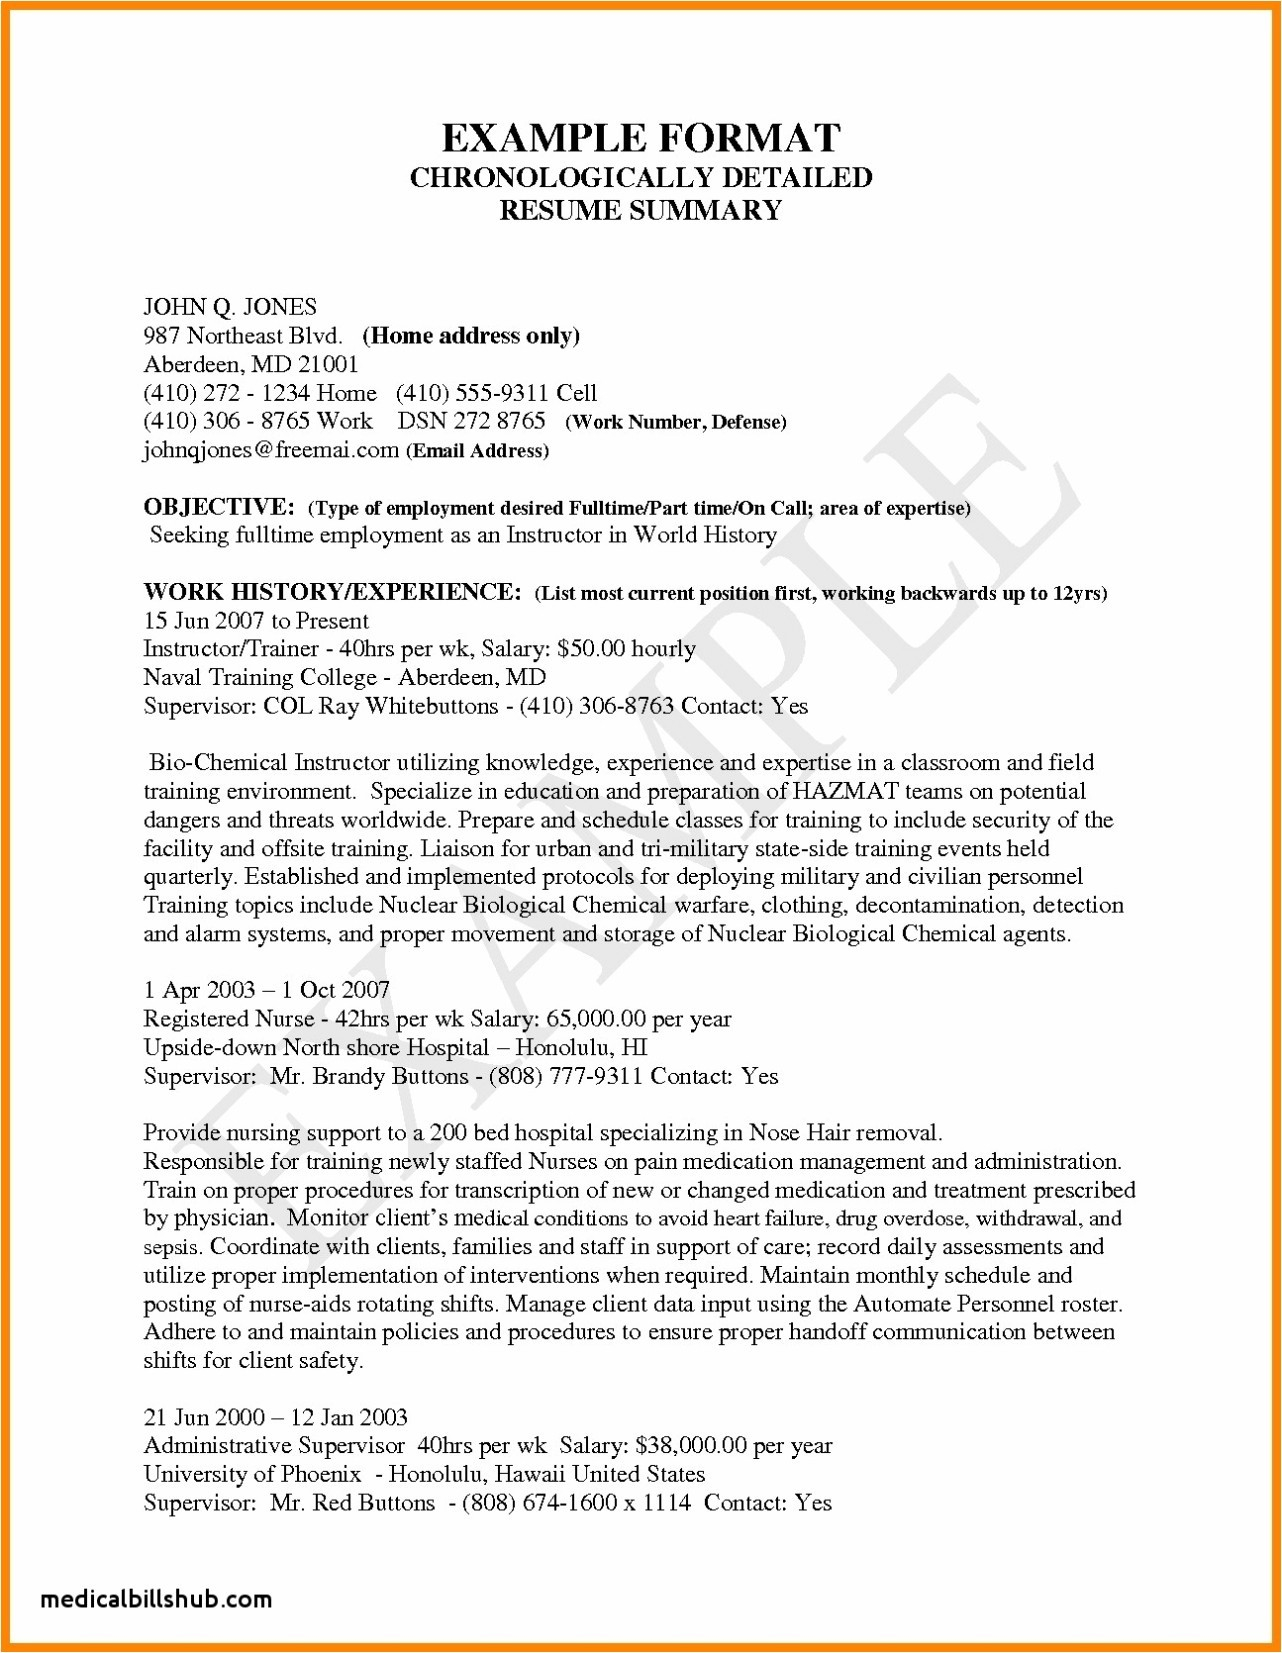 Federal Resume Guide - Sample Federal Resume Fresh Unique Resume for Highschool Students